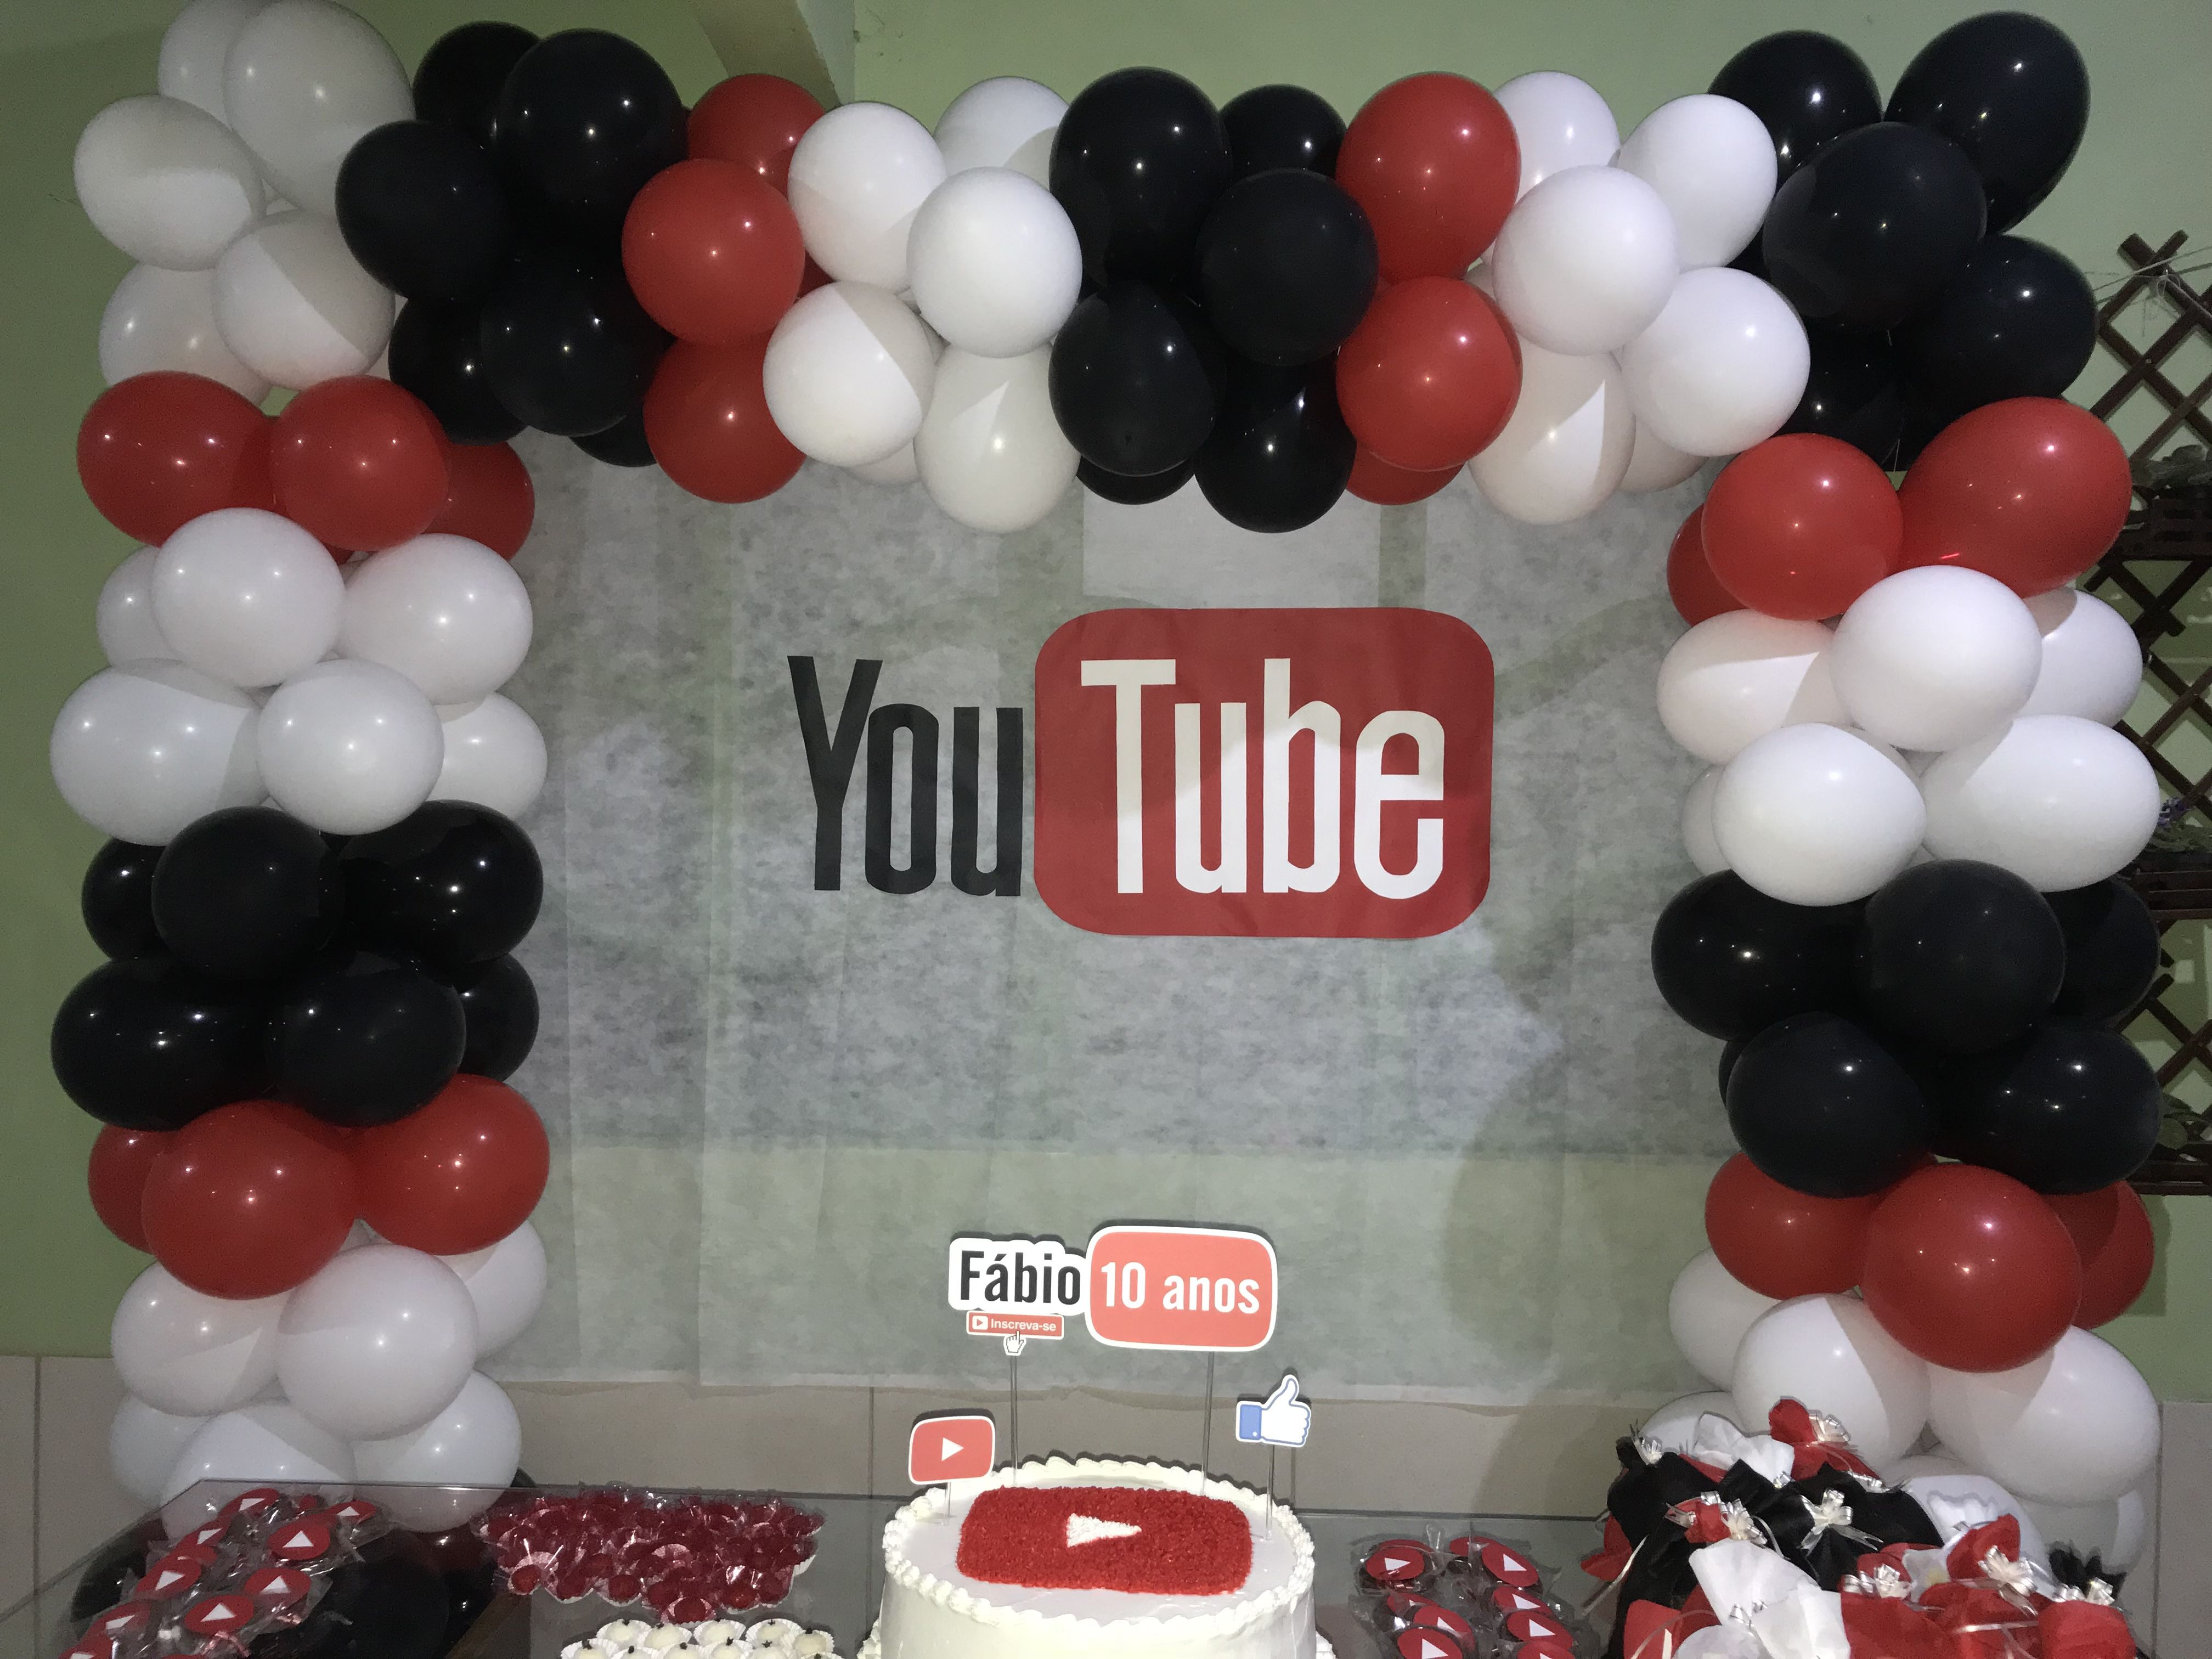 Pin By Kyssilla Nestor Boyd On Youtube Themed Party 7th Birthday Party Ideas Youtube Party Youtube Birthday